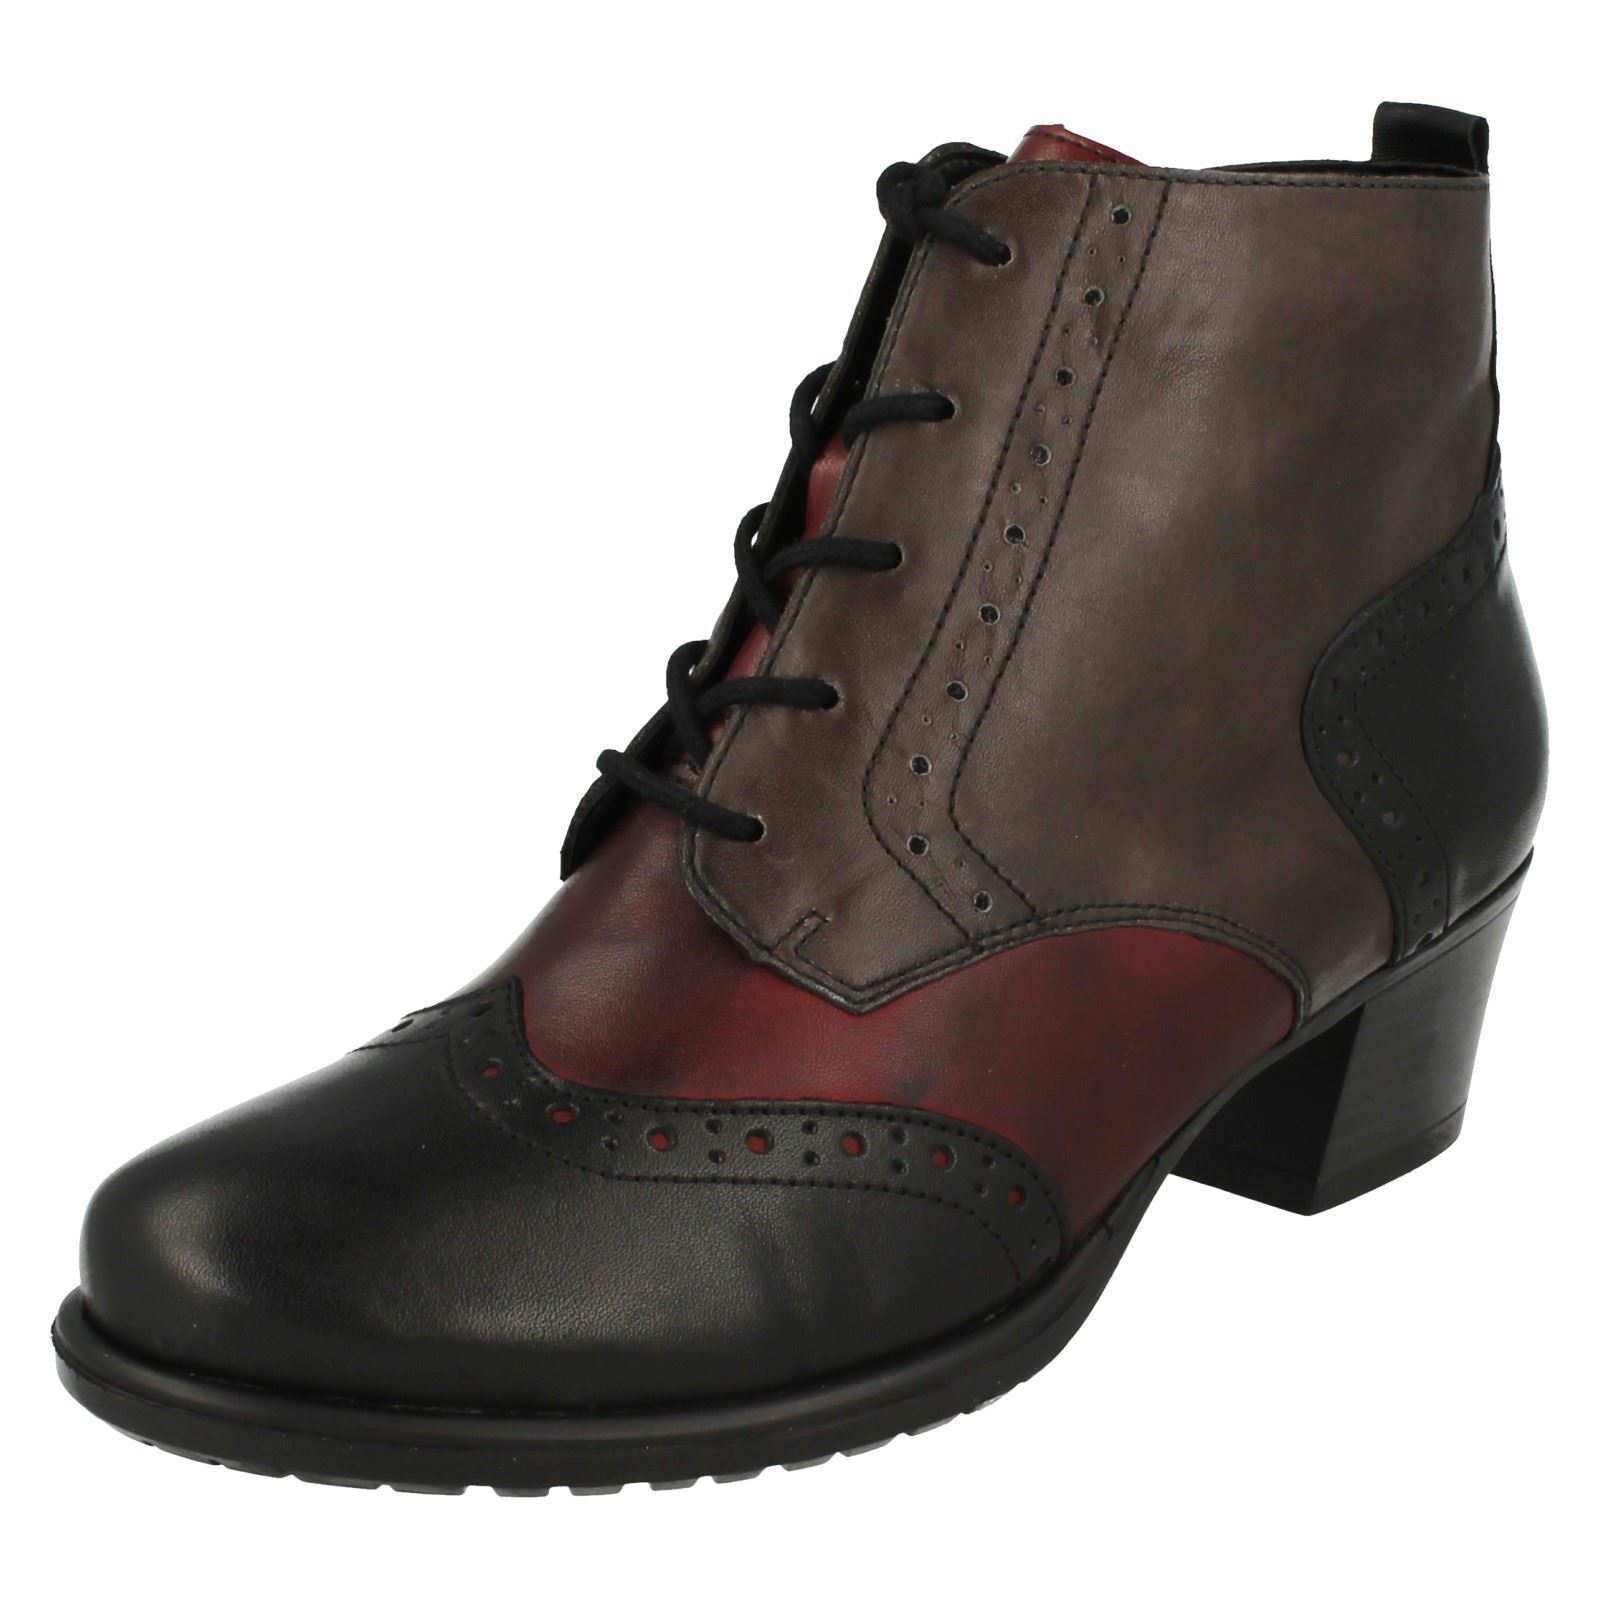 REMONTE LADIES LEATHER ZIP UP MID HEEL BROGUE CASUAL Damenschuhe ANKLE ANKLE Damenschuhe Stiefel D3180 9b5be8